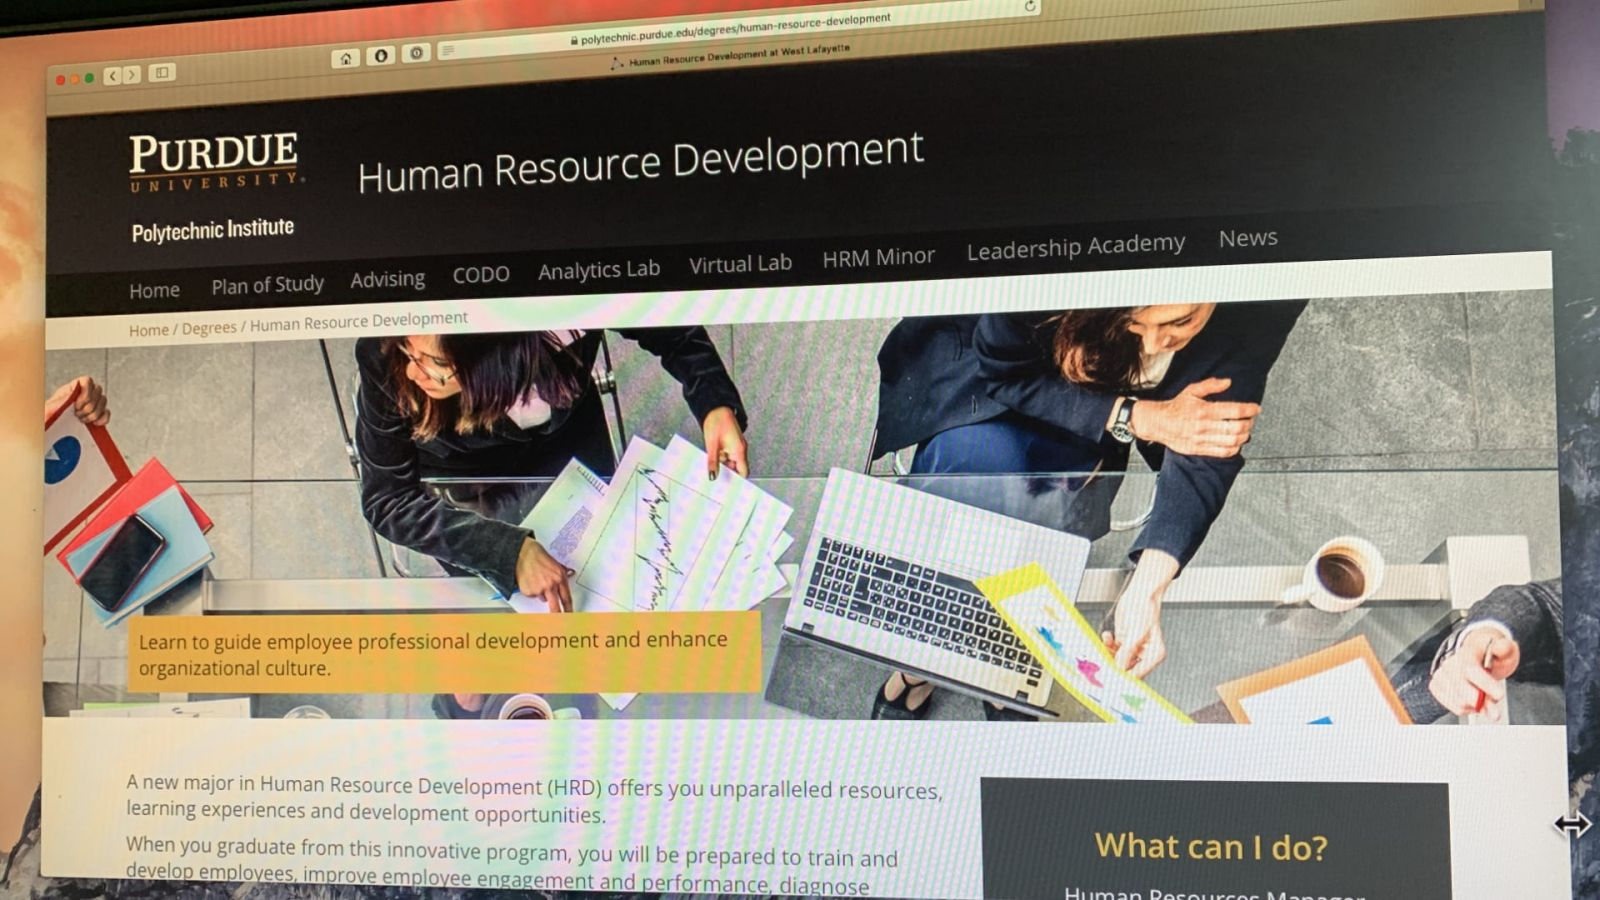 Human Resource Development major